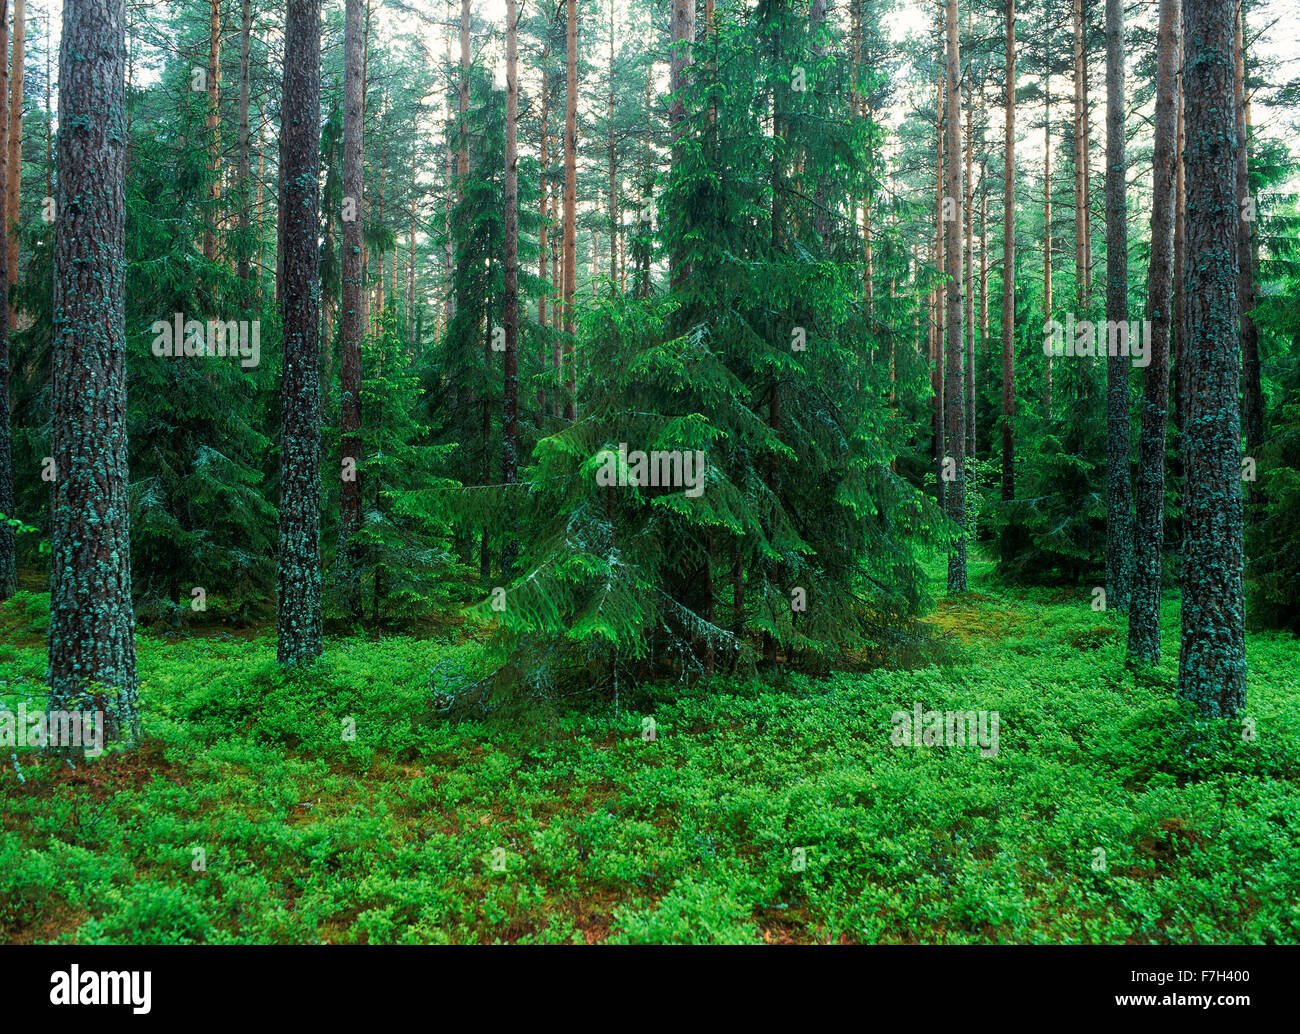 Agriculture pine forest in Uppland, Sweden Stock Photo